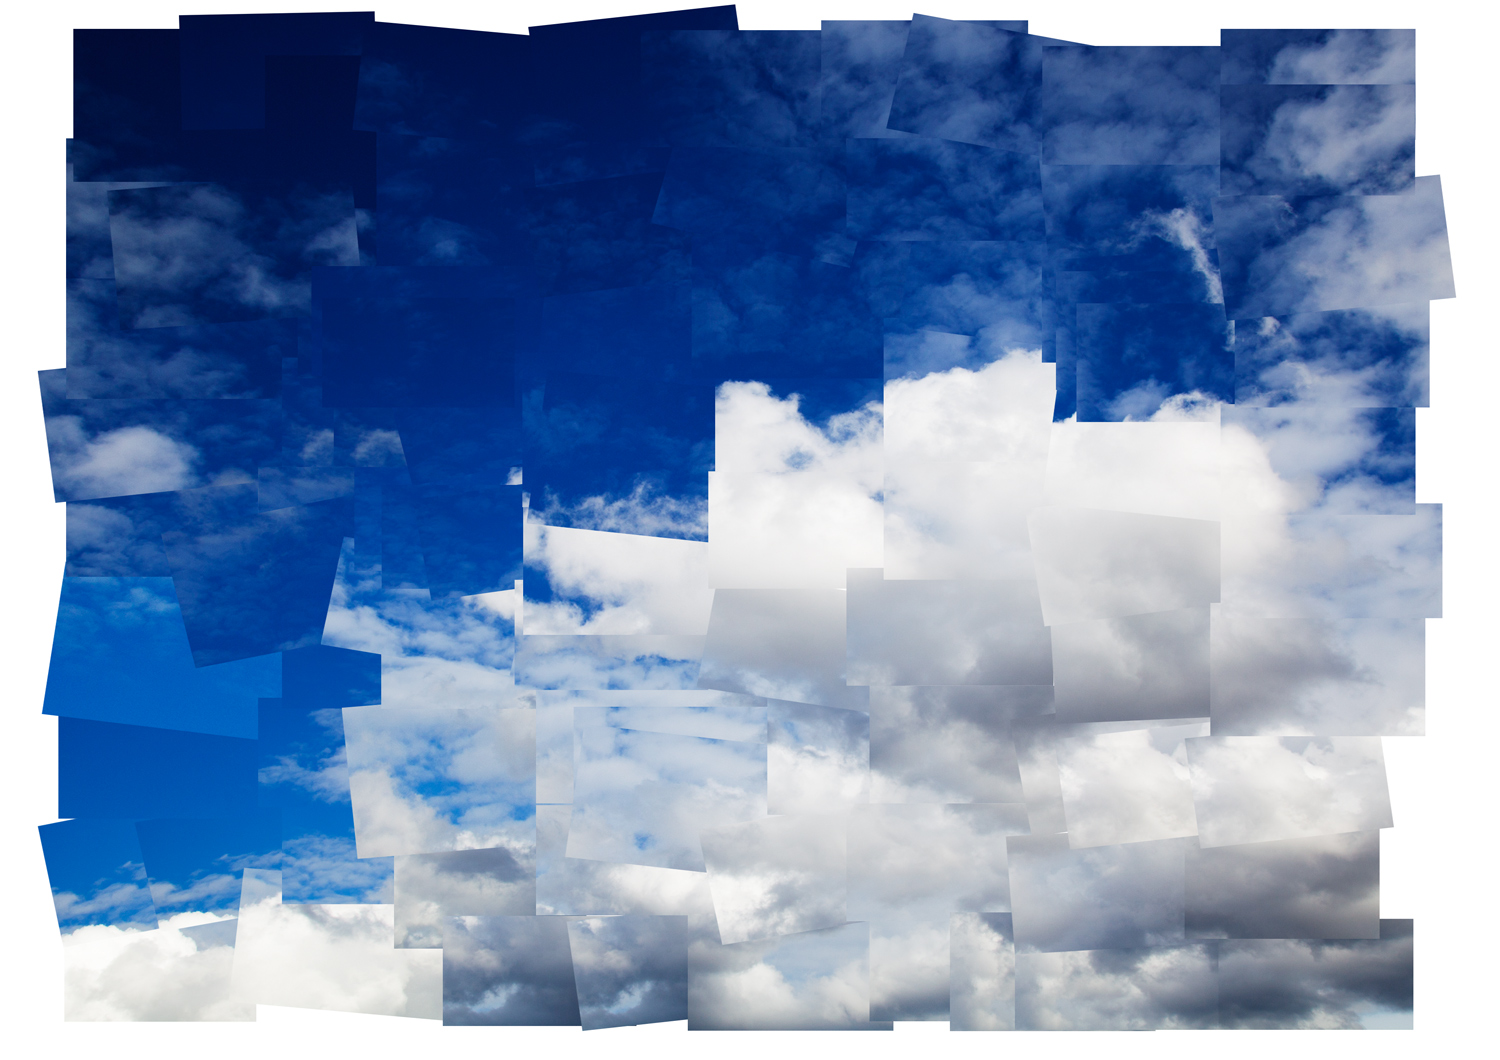 https://i0.wp.com/digital-photography-school.com/wp-content/uploads/2019/09/David_hockney_tutorial_clouds_final.jpg?resize=1500%2C1060&ssl=1